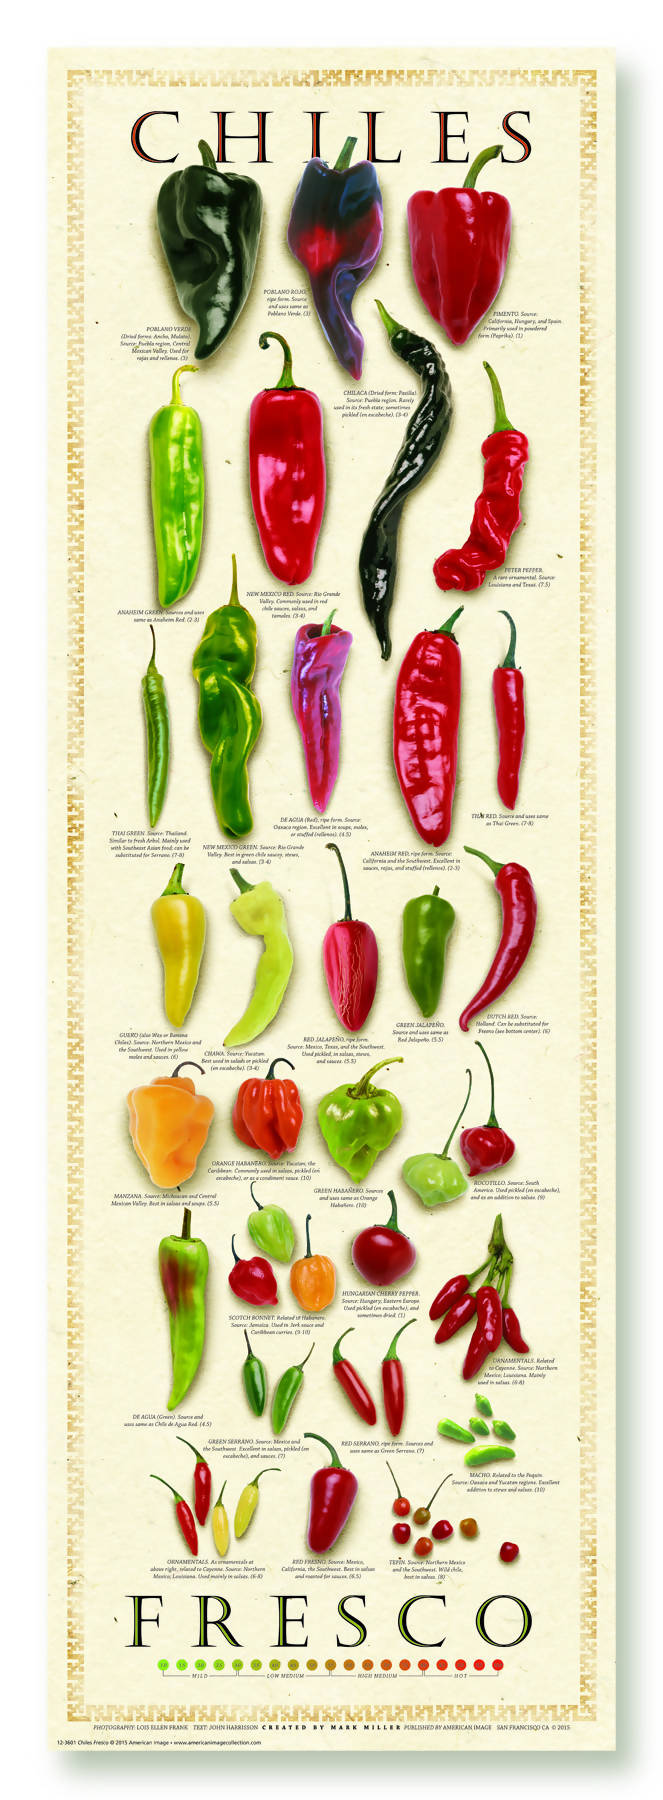 The Great Chile Poster 12x36 (Fresh Chiles)